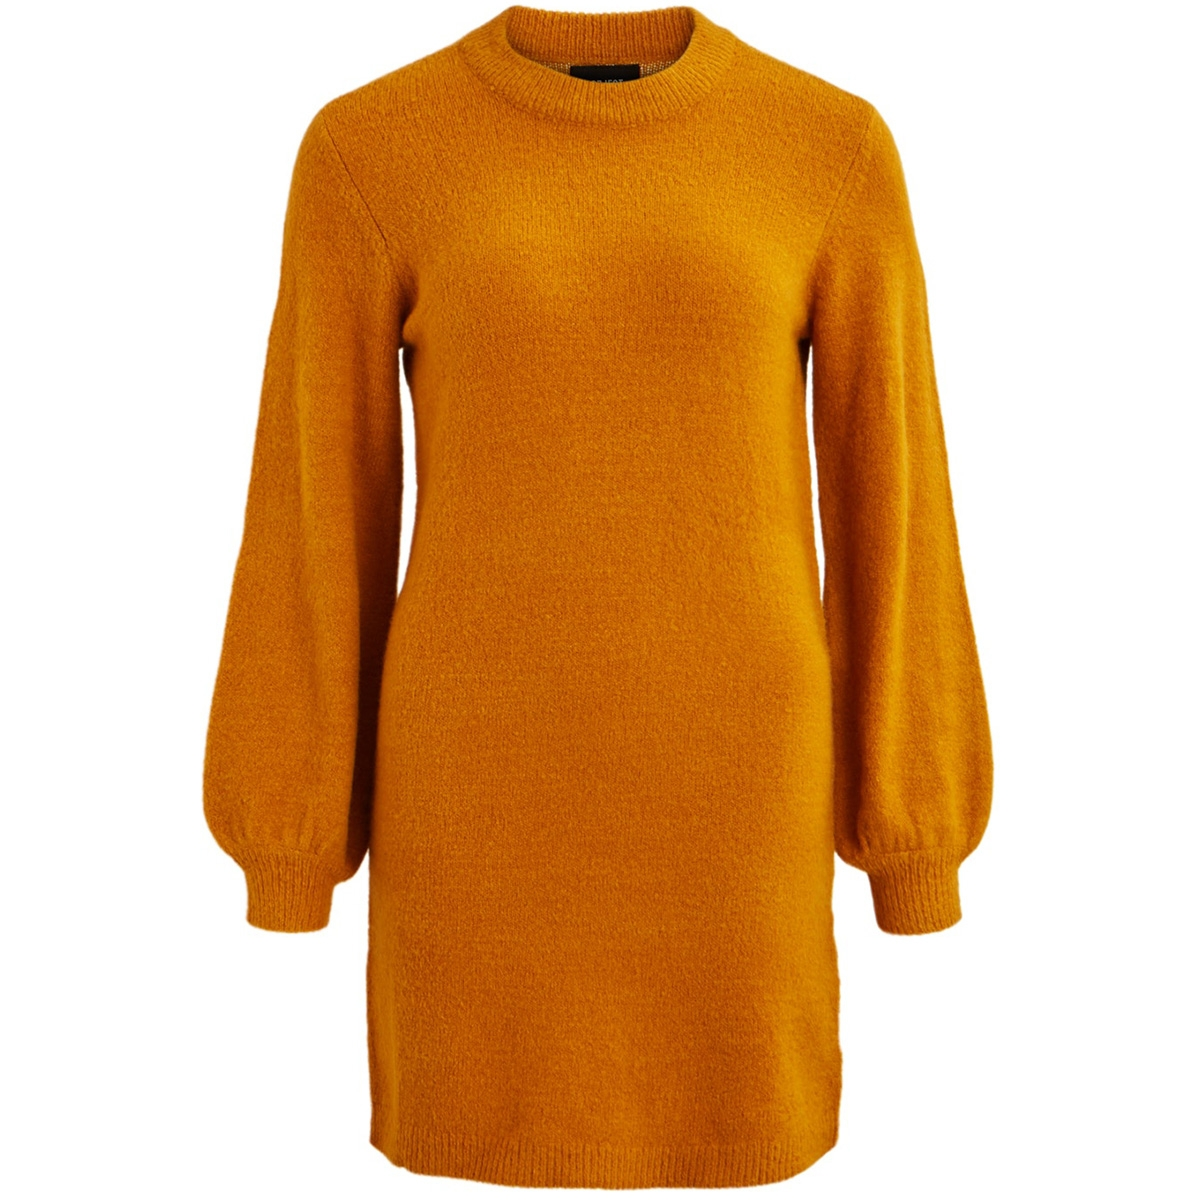 objeve nonsia l/s knit dress season 23030464 object jurk buckthorn brown